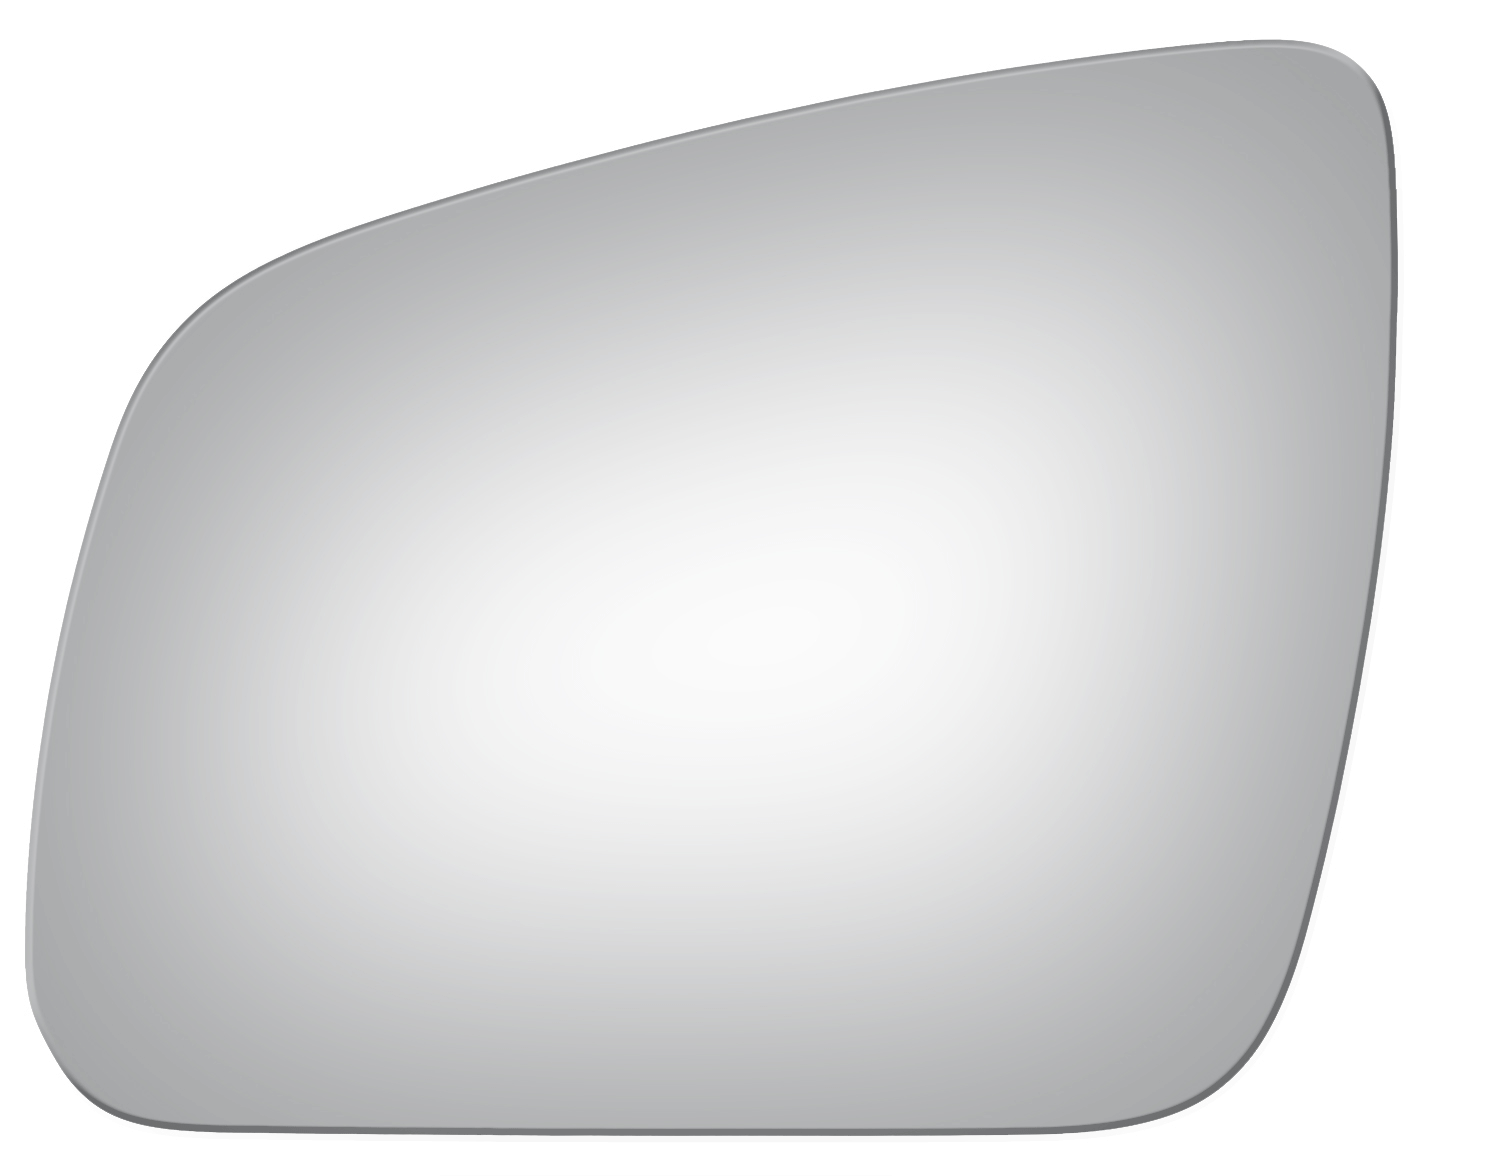 Mercedes benz c350 2008 driver side mirror glass for Mercedes benz side mirror price